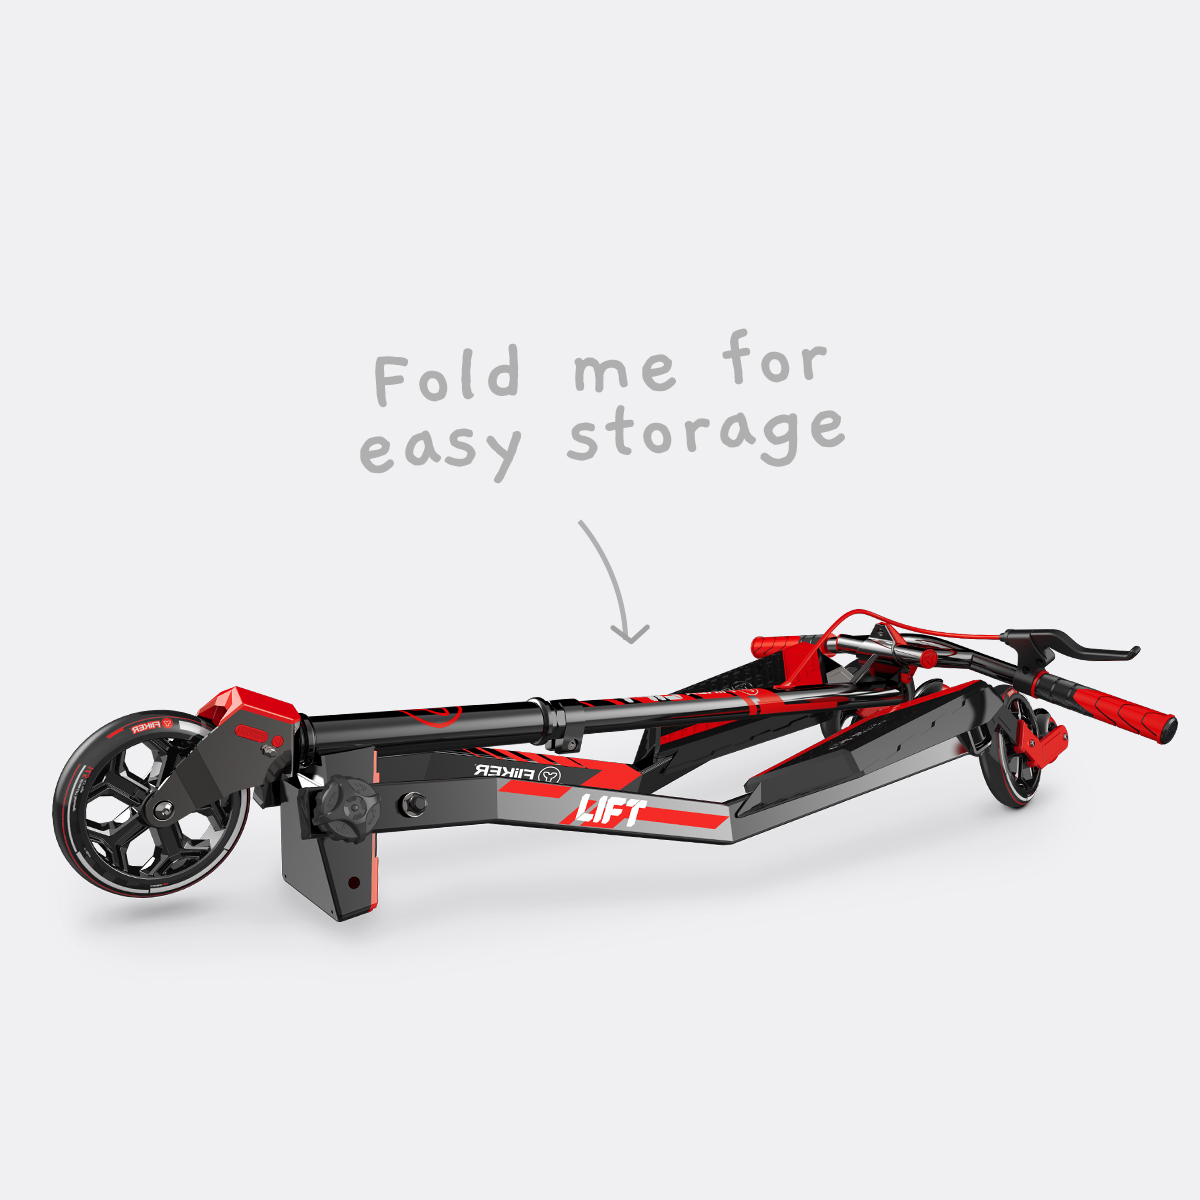 Fold me for easy storage